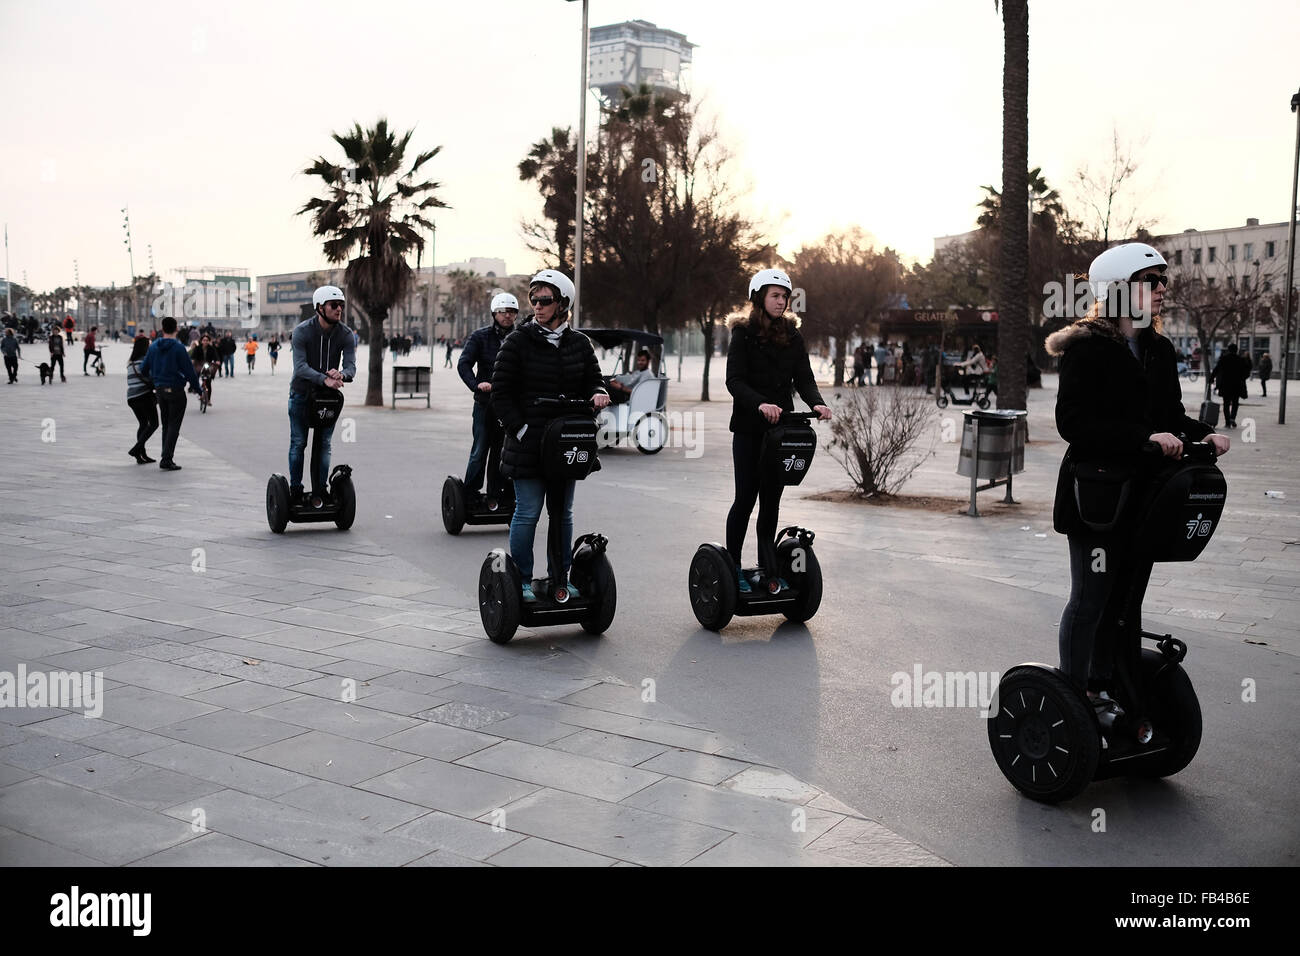 5 helmeted tourists traveling on Segway's on Barcelona's waterfront in Barceloneta. - Stock Image